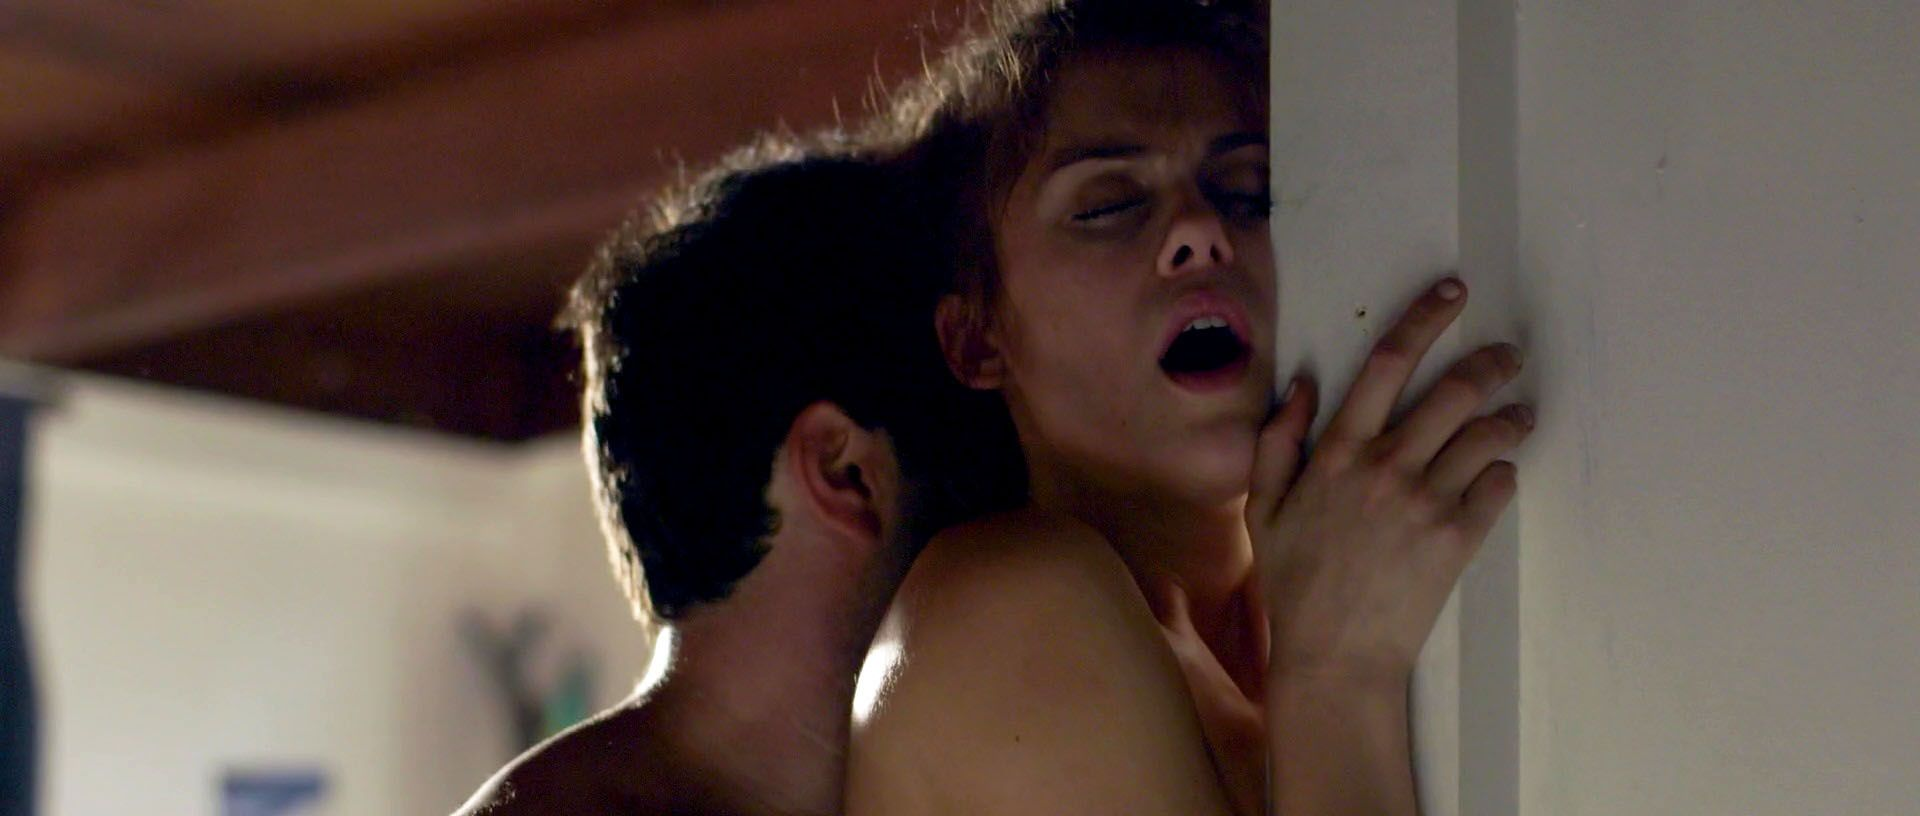 Lindsey Shaw Sex Tape photo 6